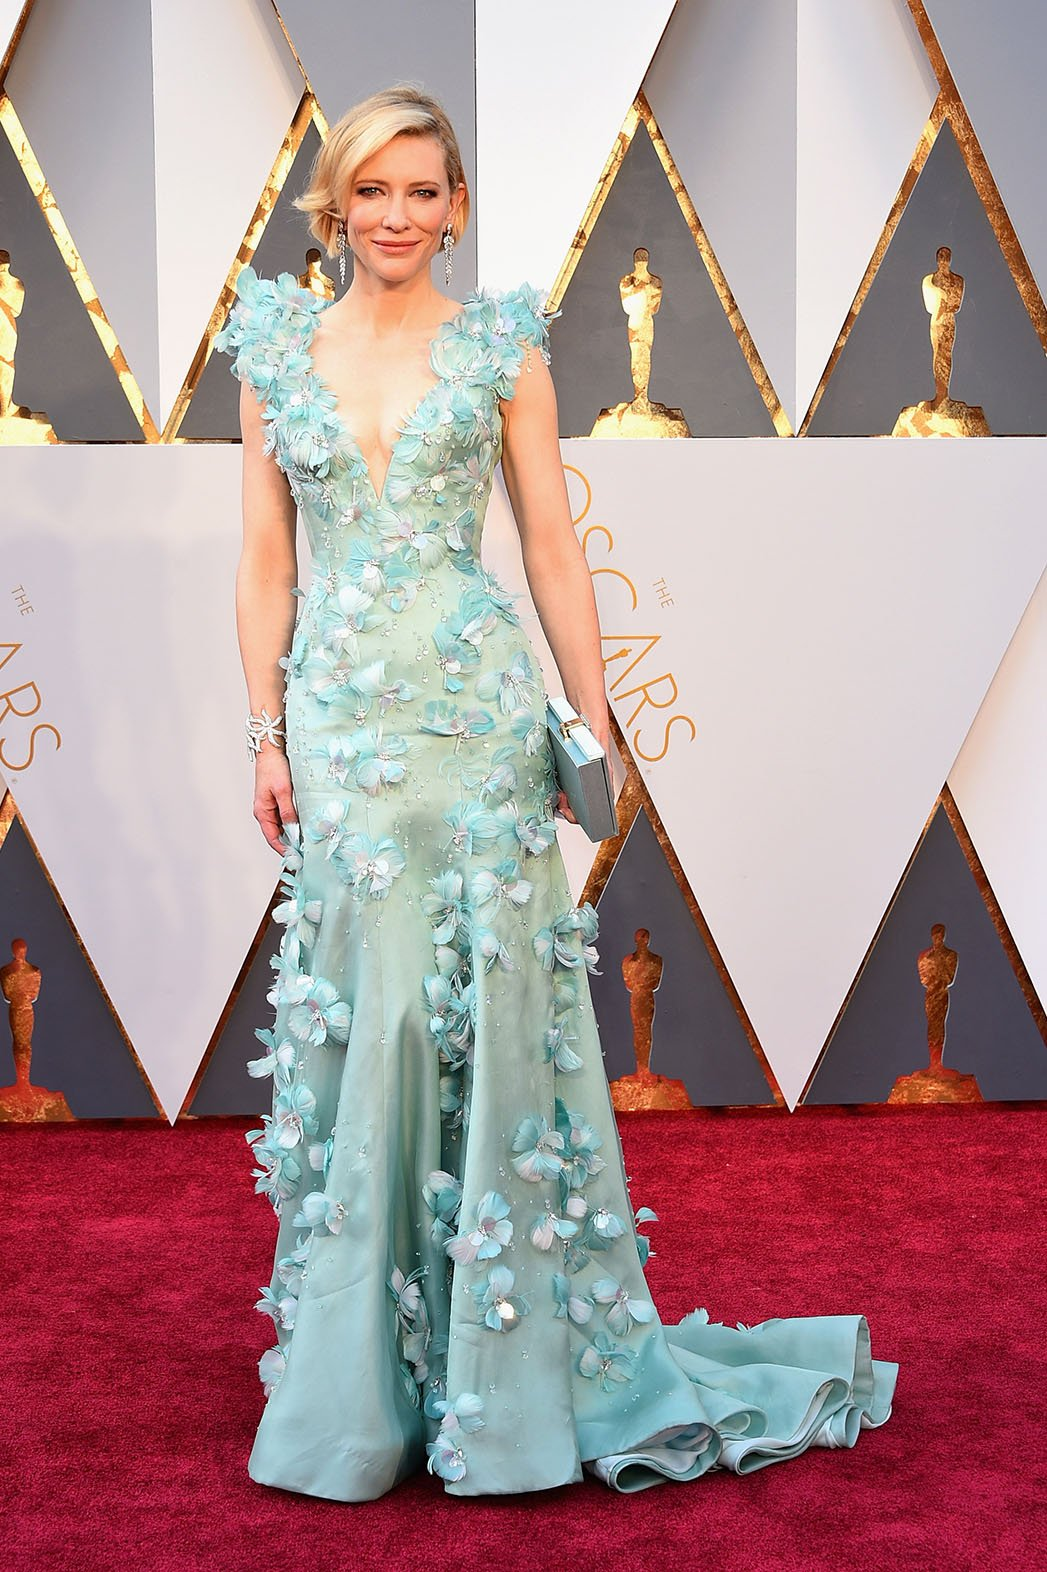 GettyImages512920744P2016 Top Best 5 Red Carpet Looks in The 88th Academy Award